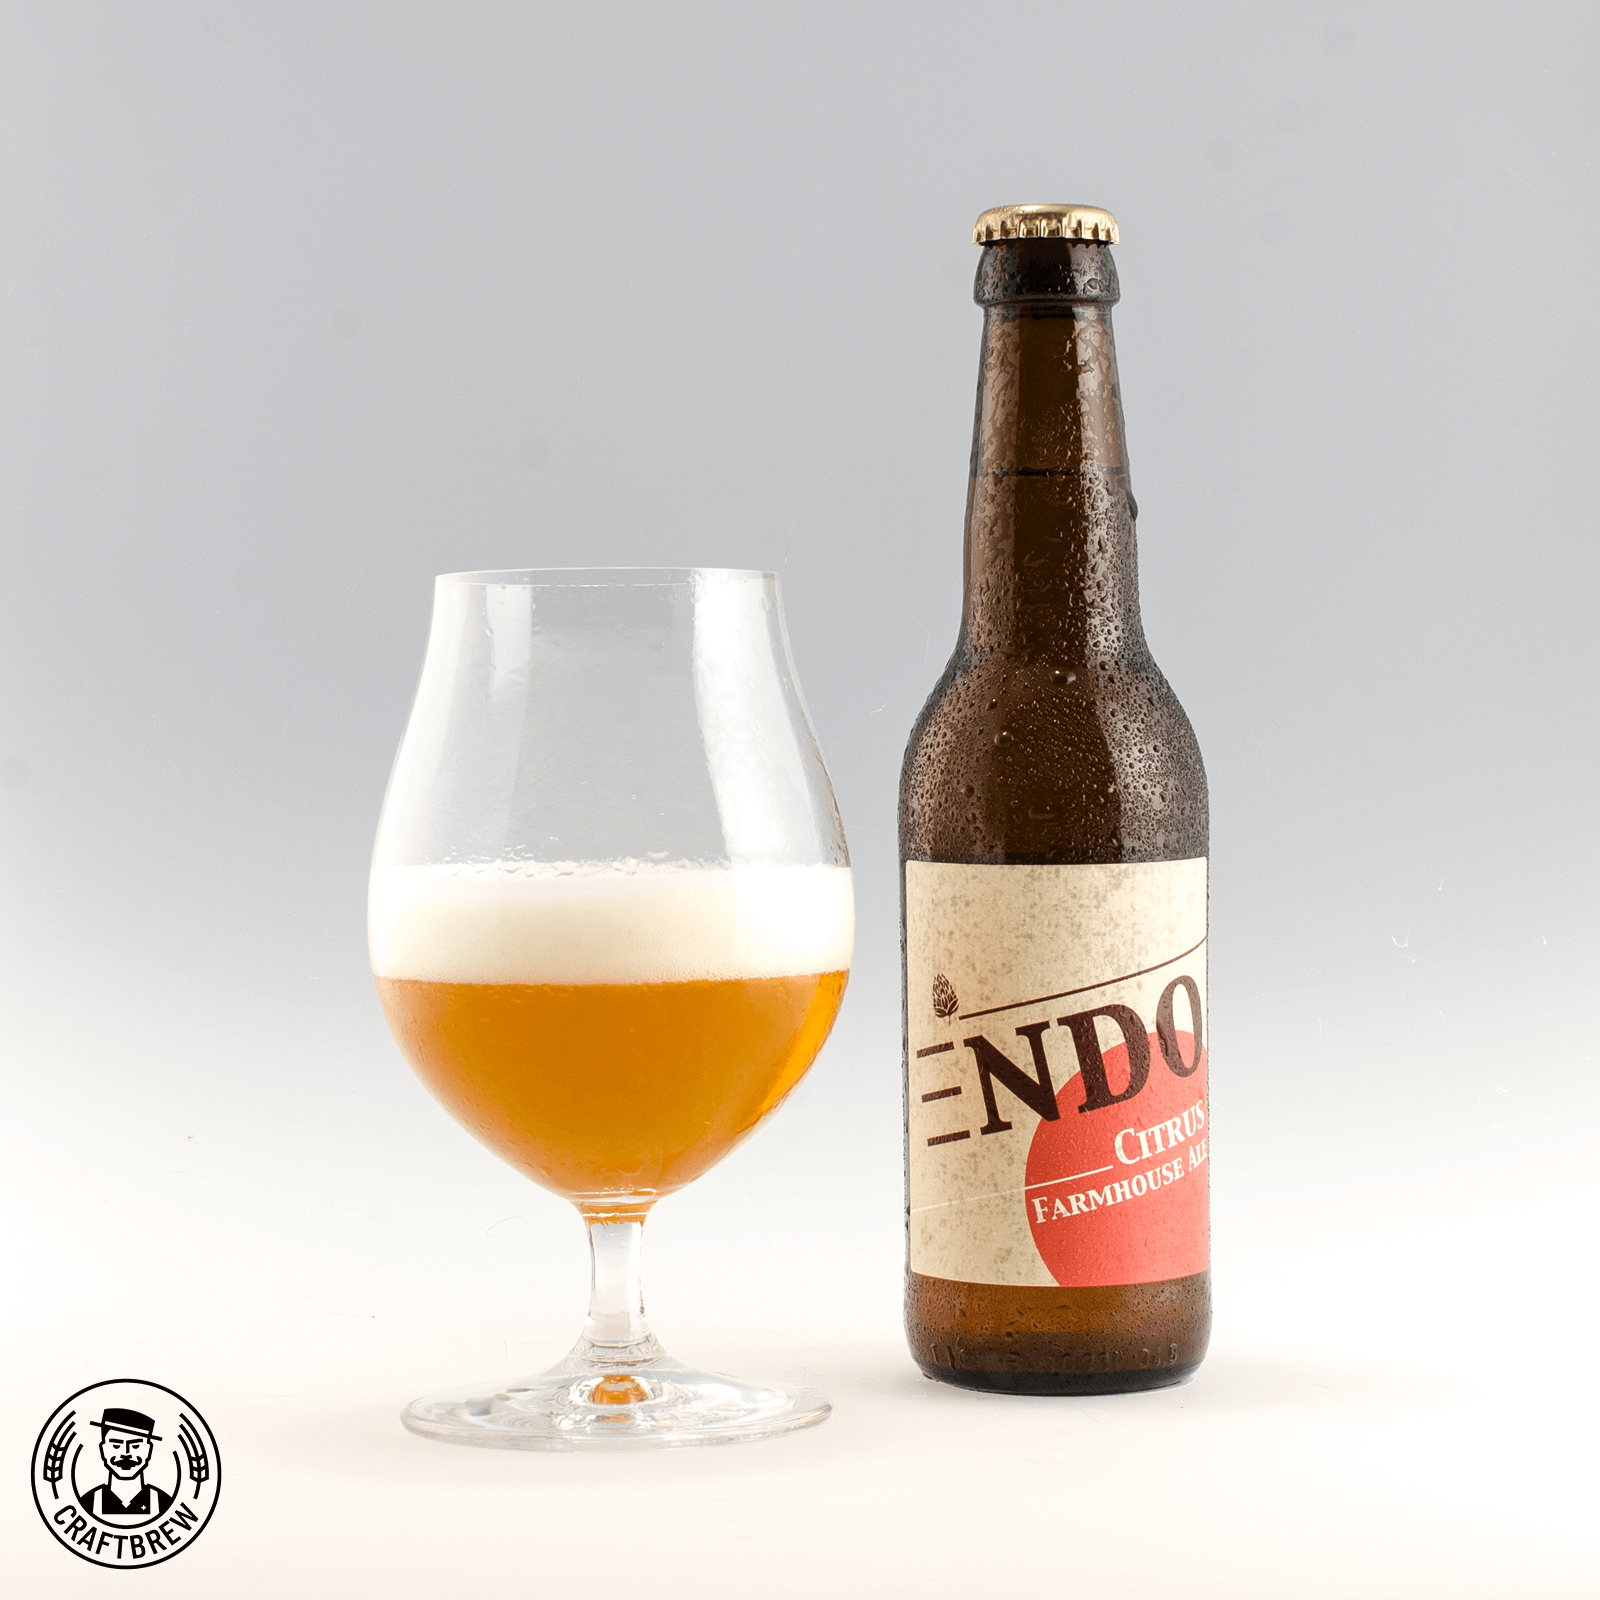 Citrus Farmhouse Ale - Endo Bier